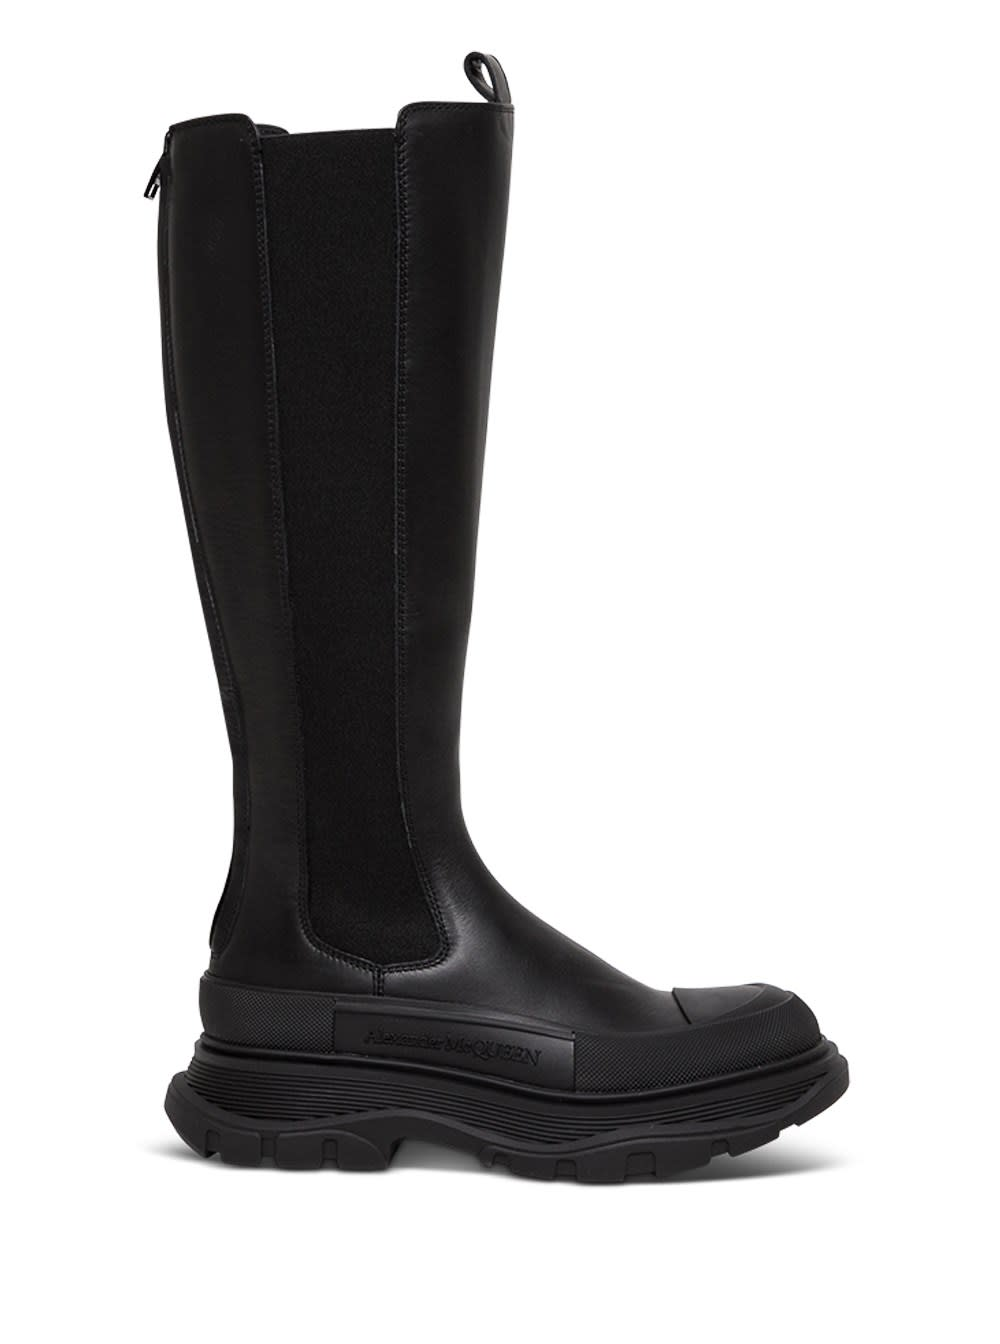 Buy Alexander McQueen Tread Slick Boots In Black Leather online, shop Alexander McQueen shoes with free shipping